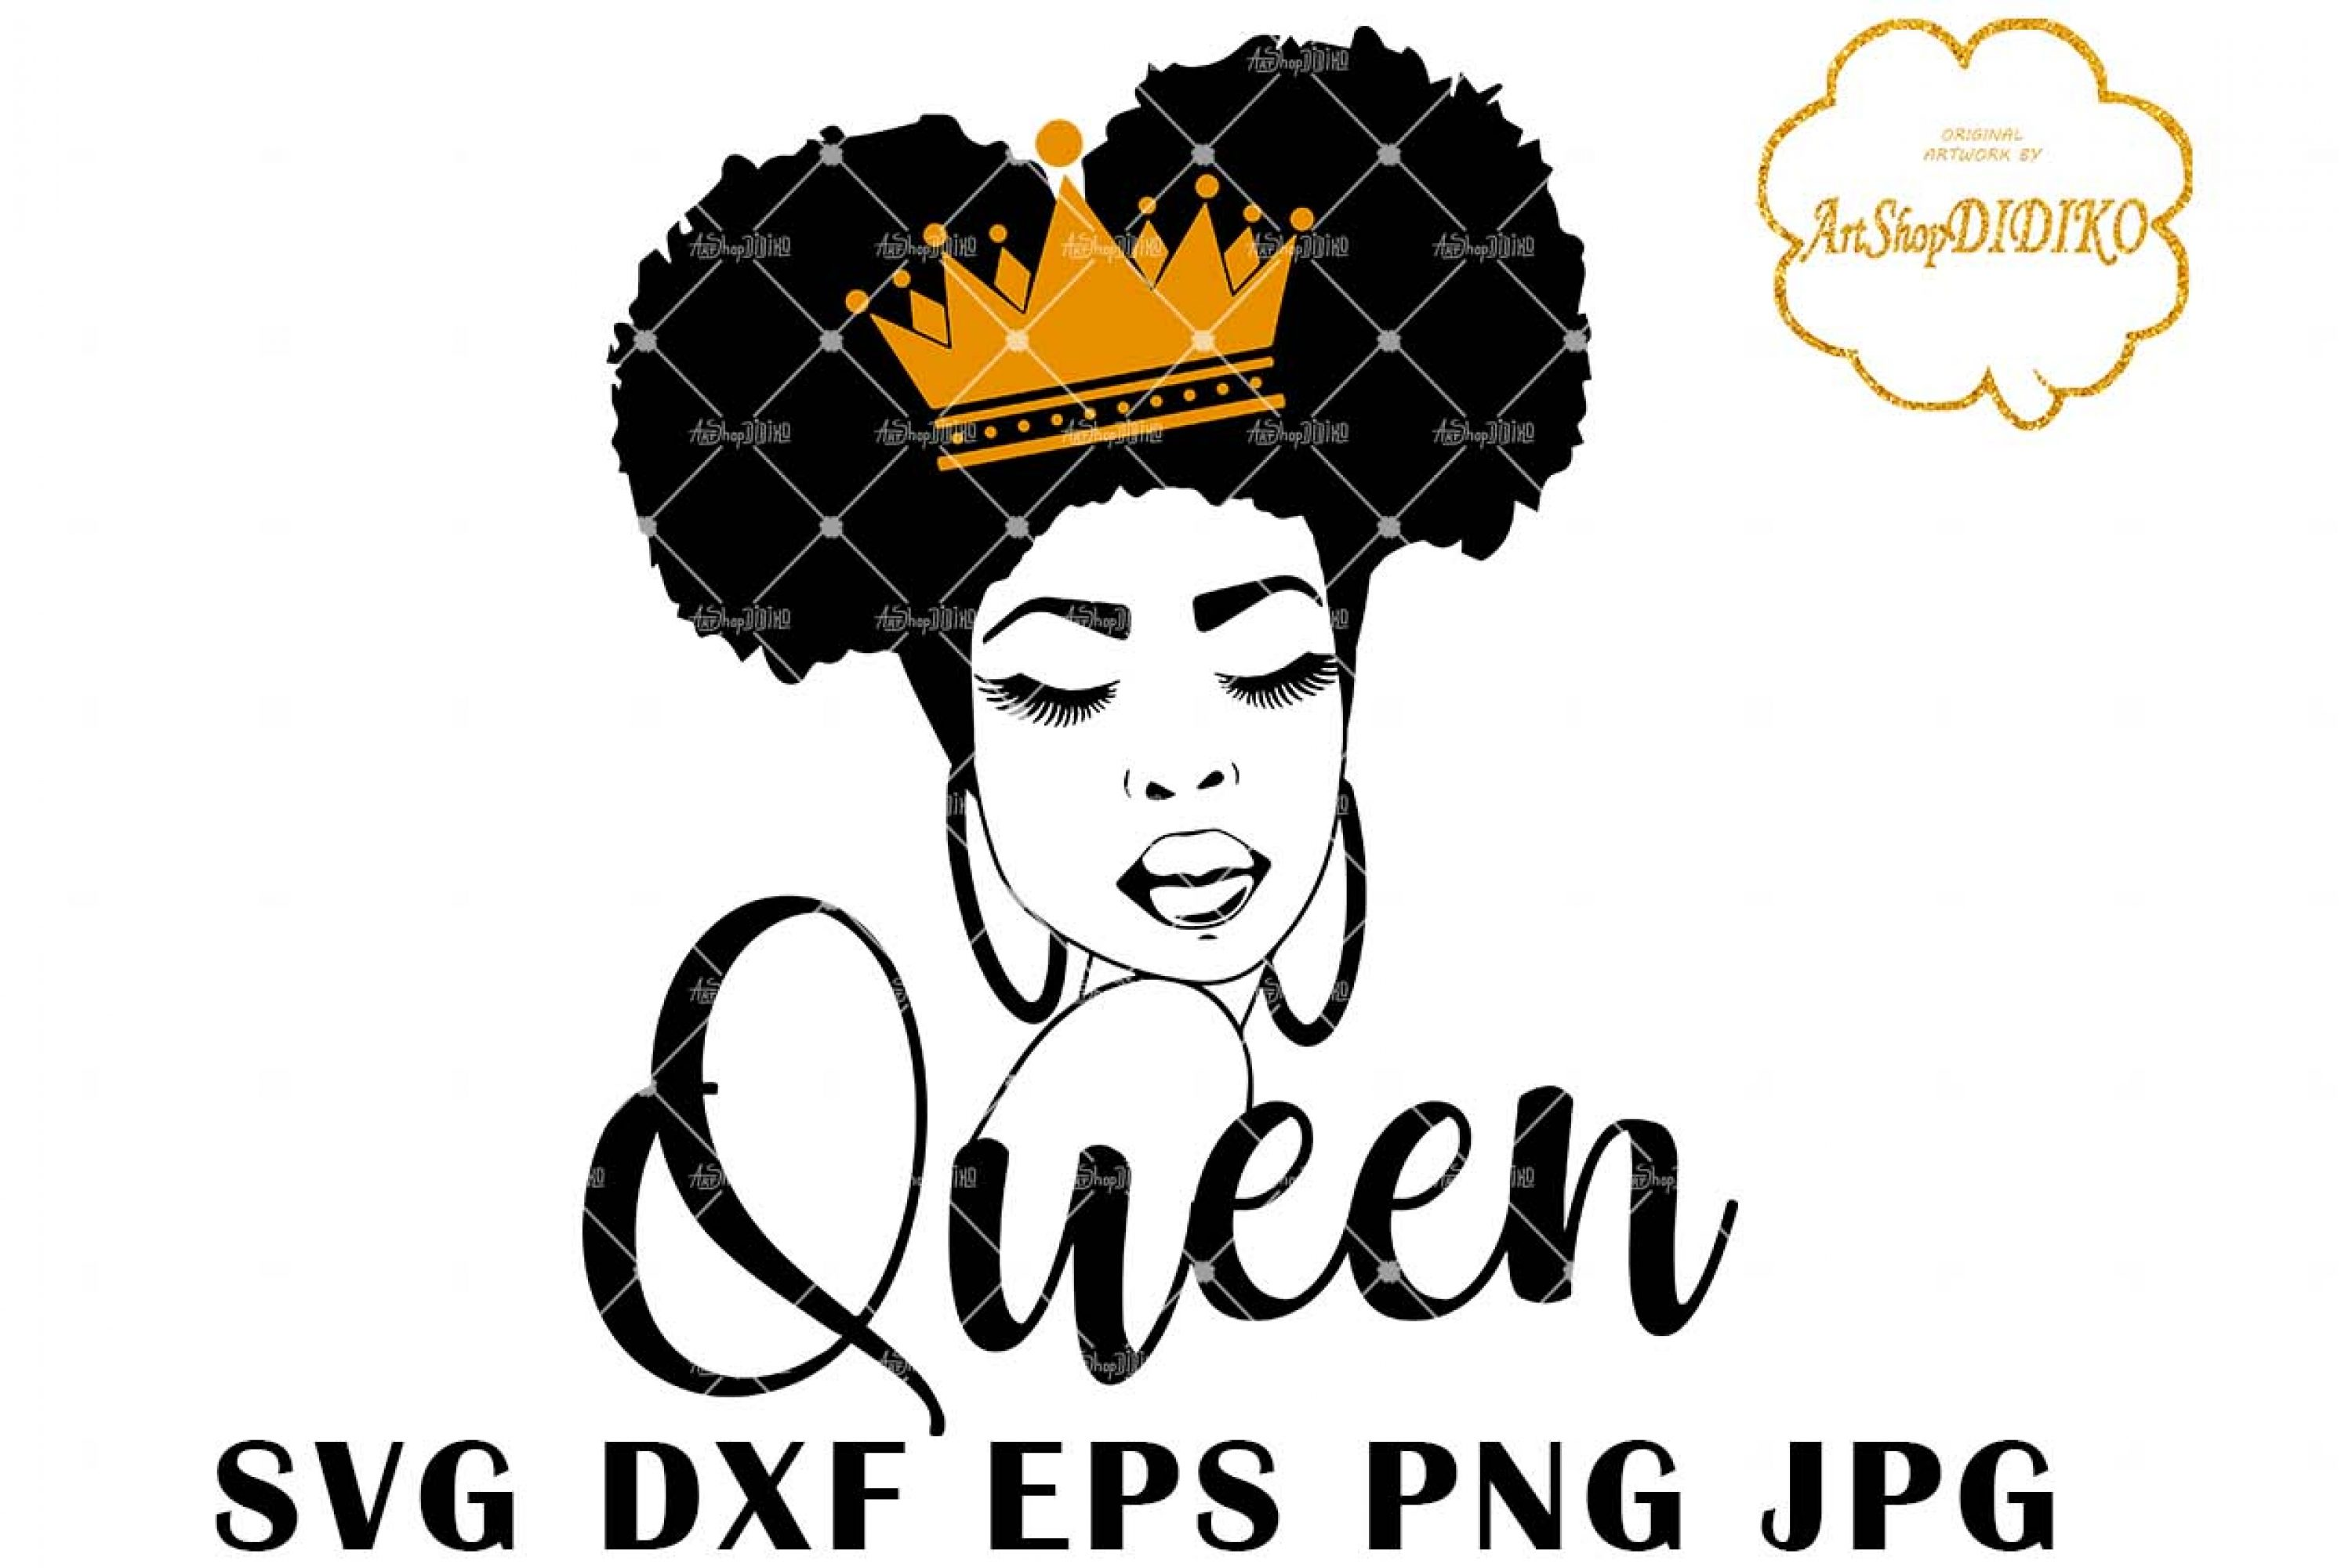 Afro Queen SVG, Afro Woman Silhouette SVG, African American Woman SVG, One Puff Hair, DXF, EPS, PNG, JPG, Silhouette Files, Cricut Cut Files